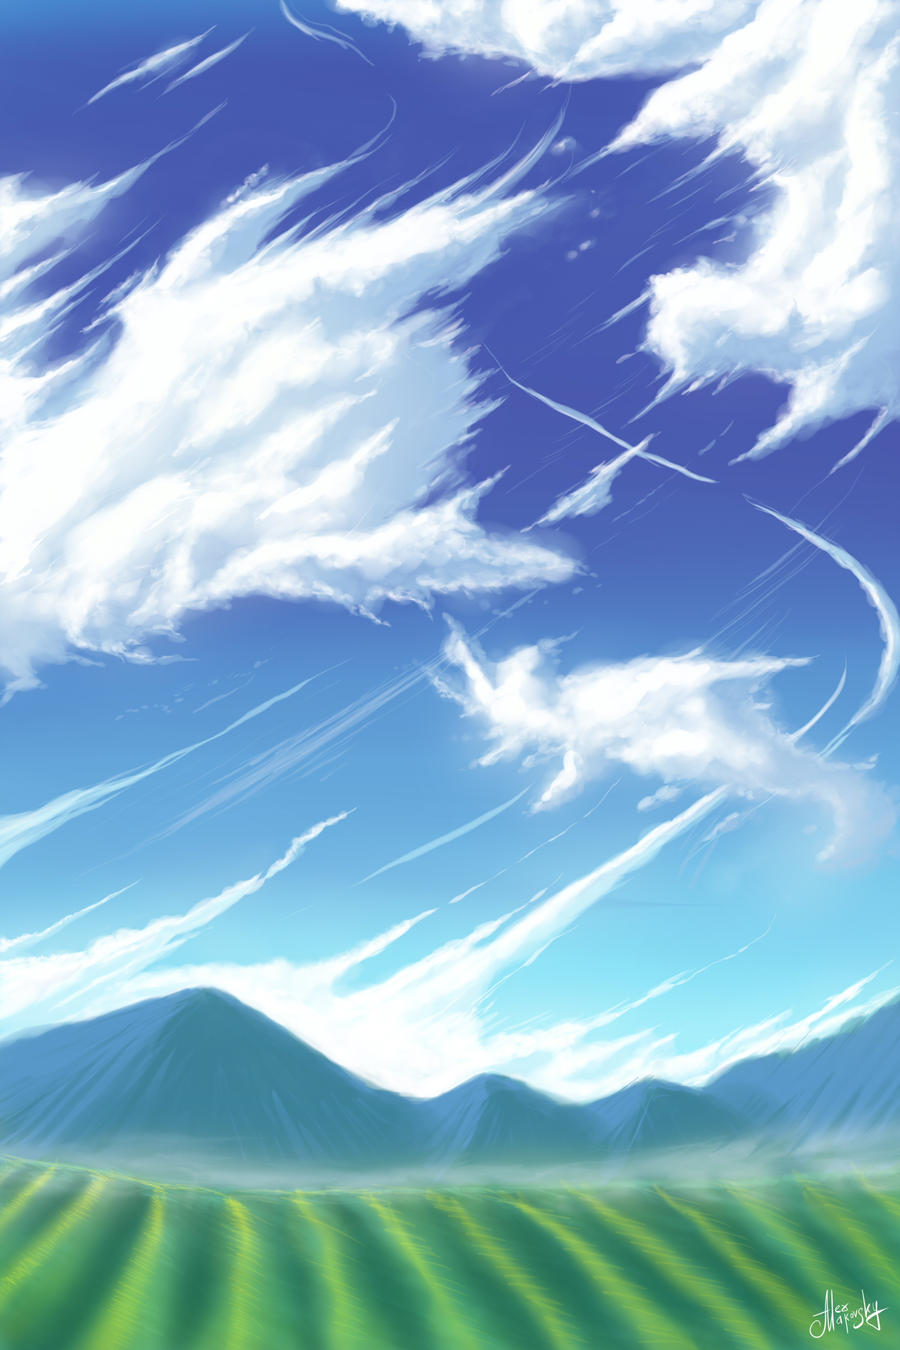 Clouds by alexmakovsky